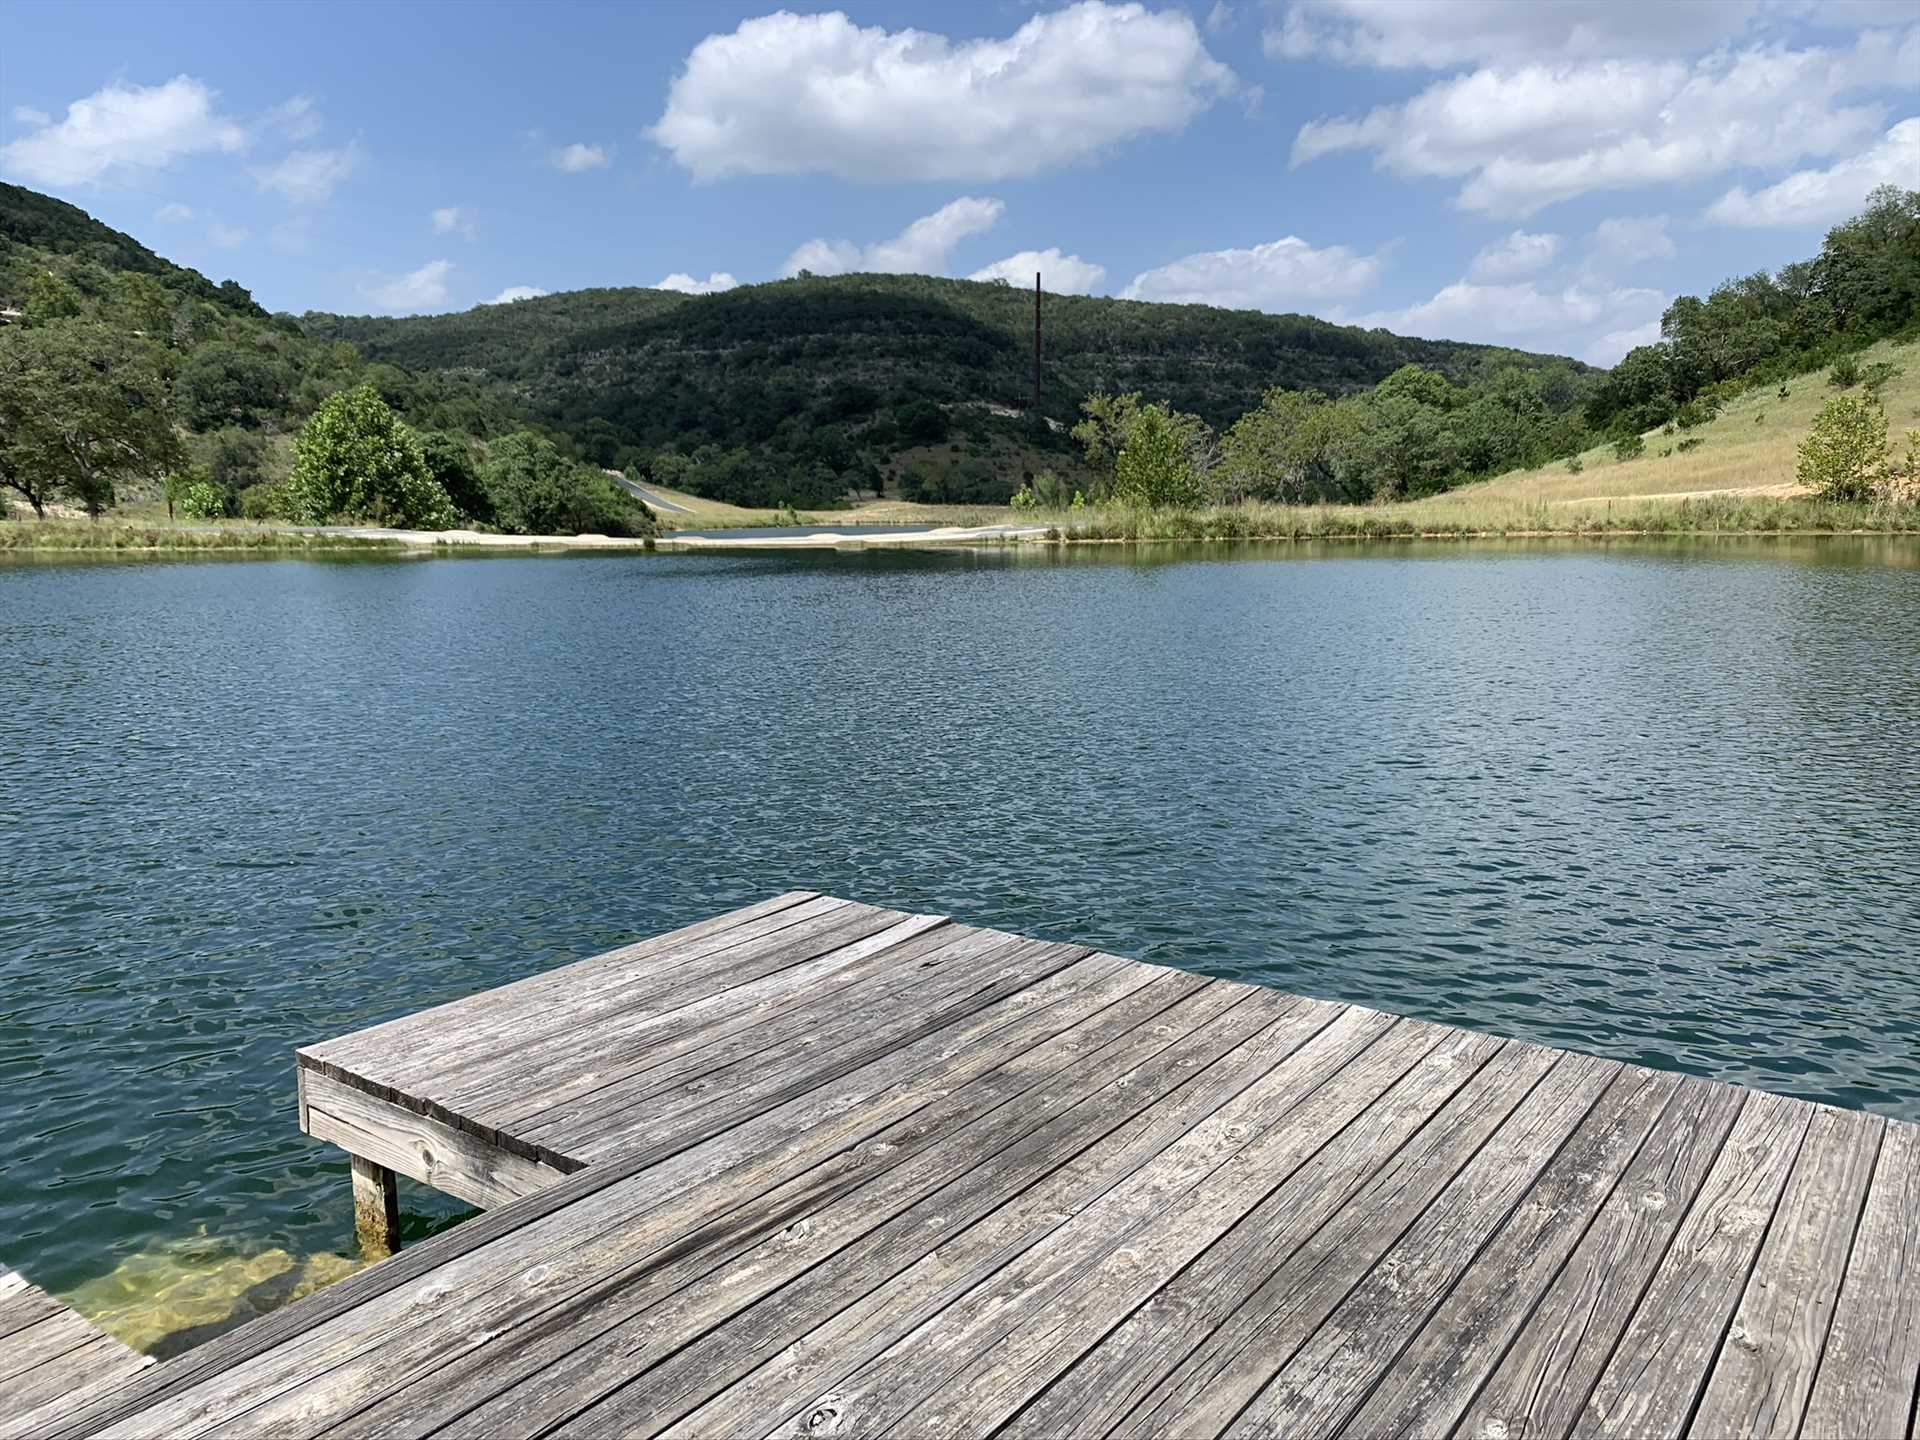 Catch-and-release fish off the pier by the lake, and take a moment to soak in those amazing mountain views!